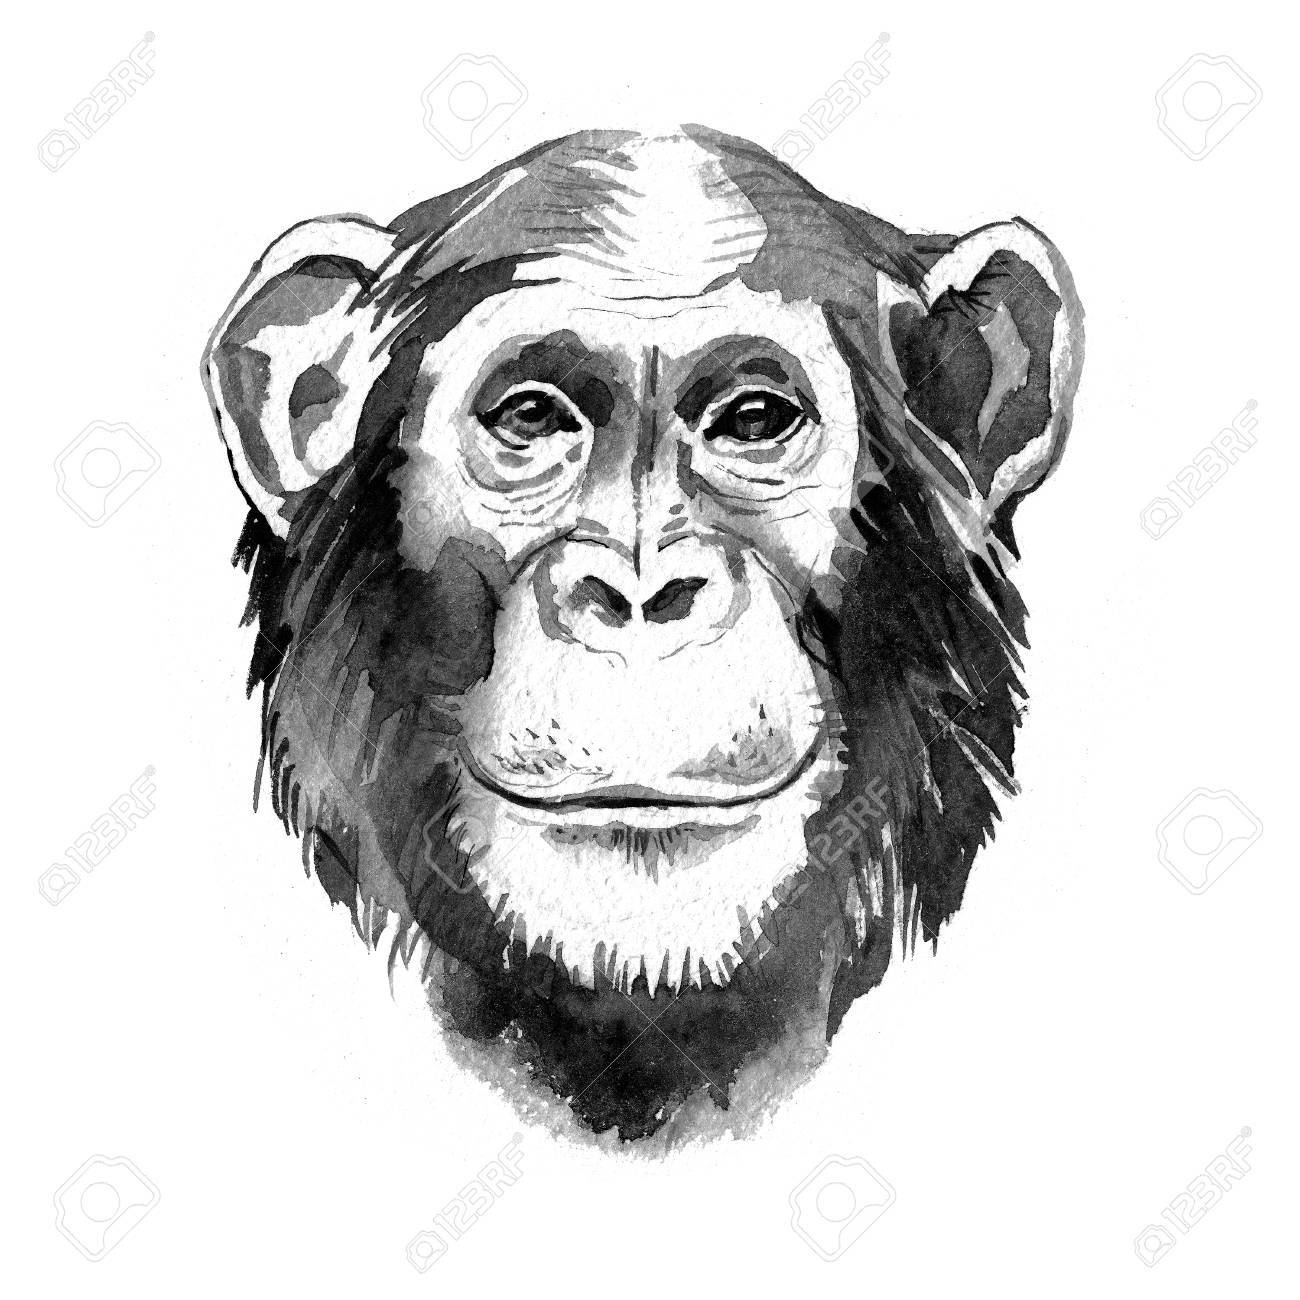 watercolor hand drawn monkey chimpanzee portrait monochrome stock